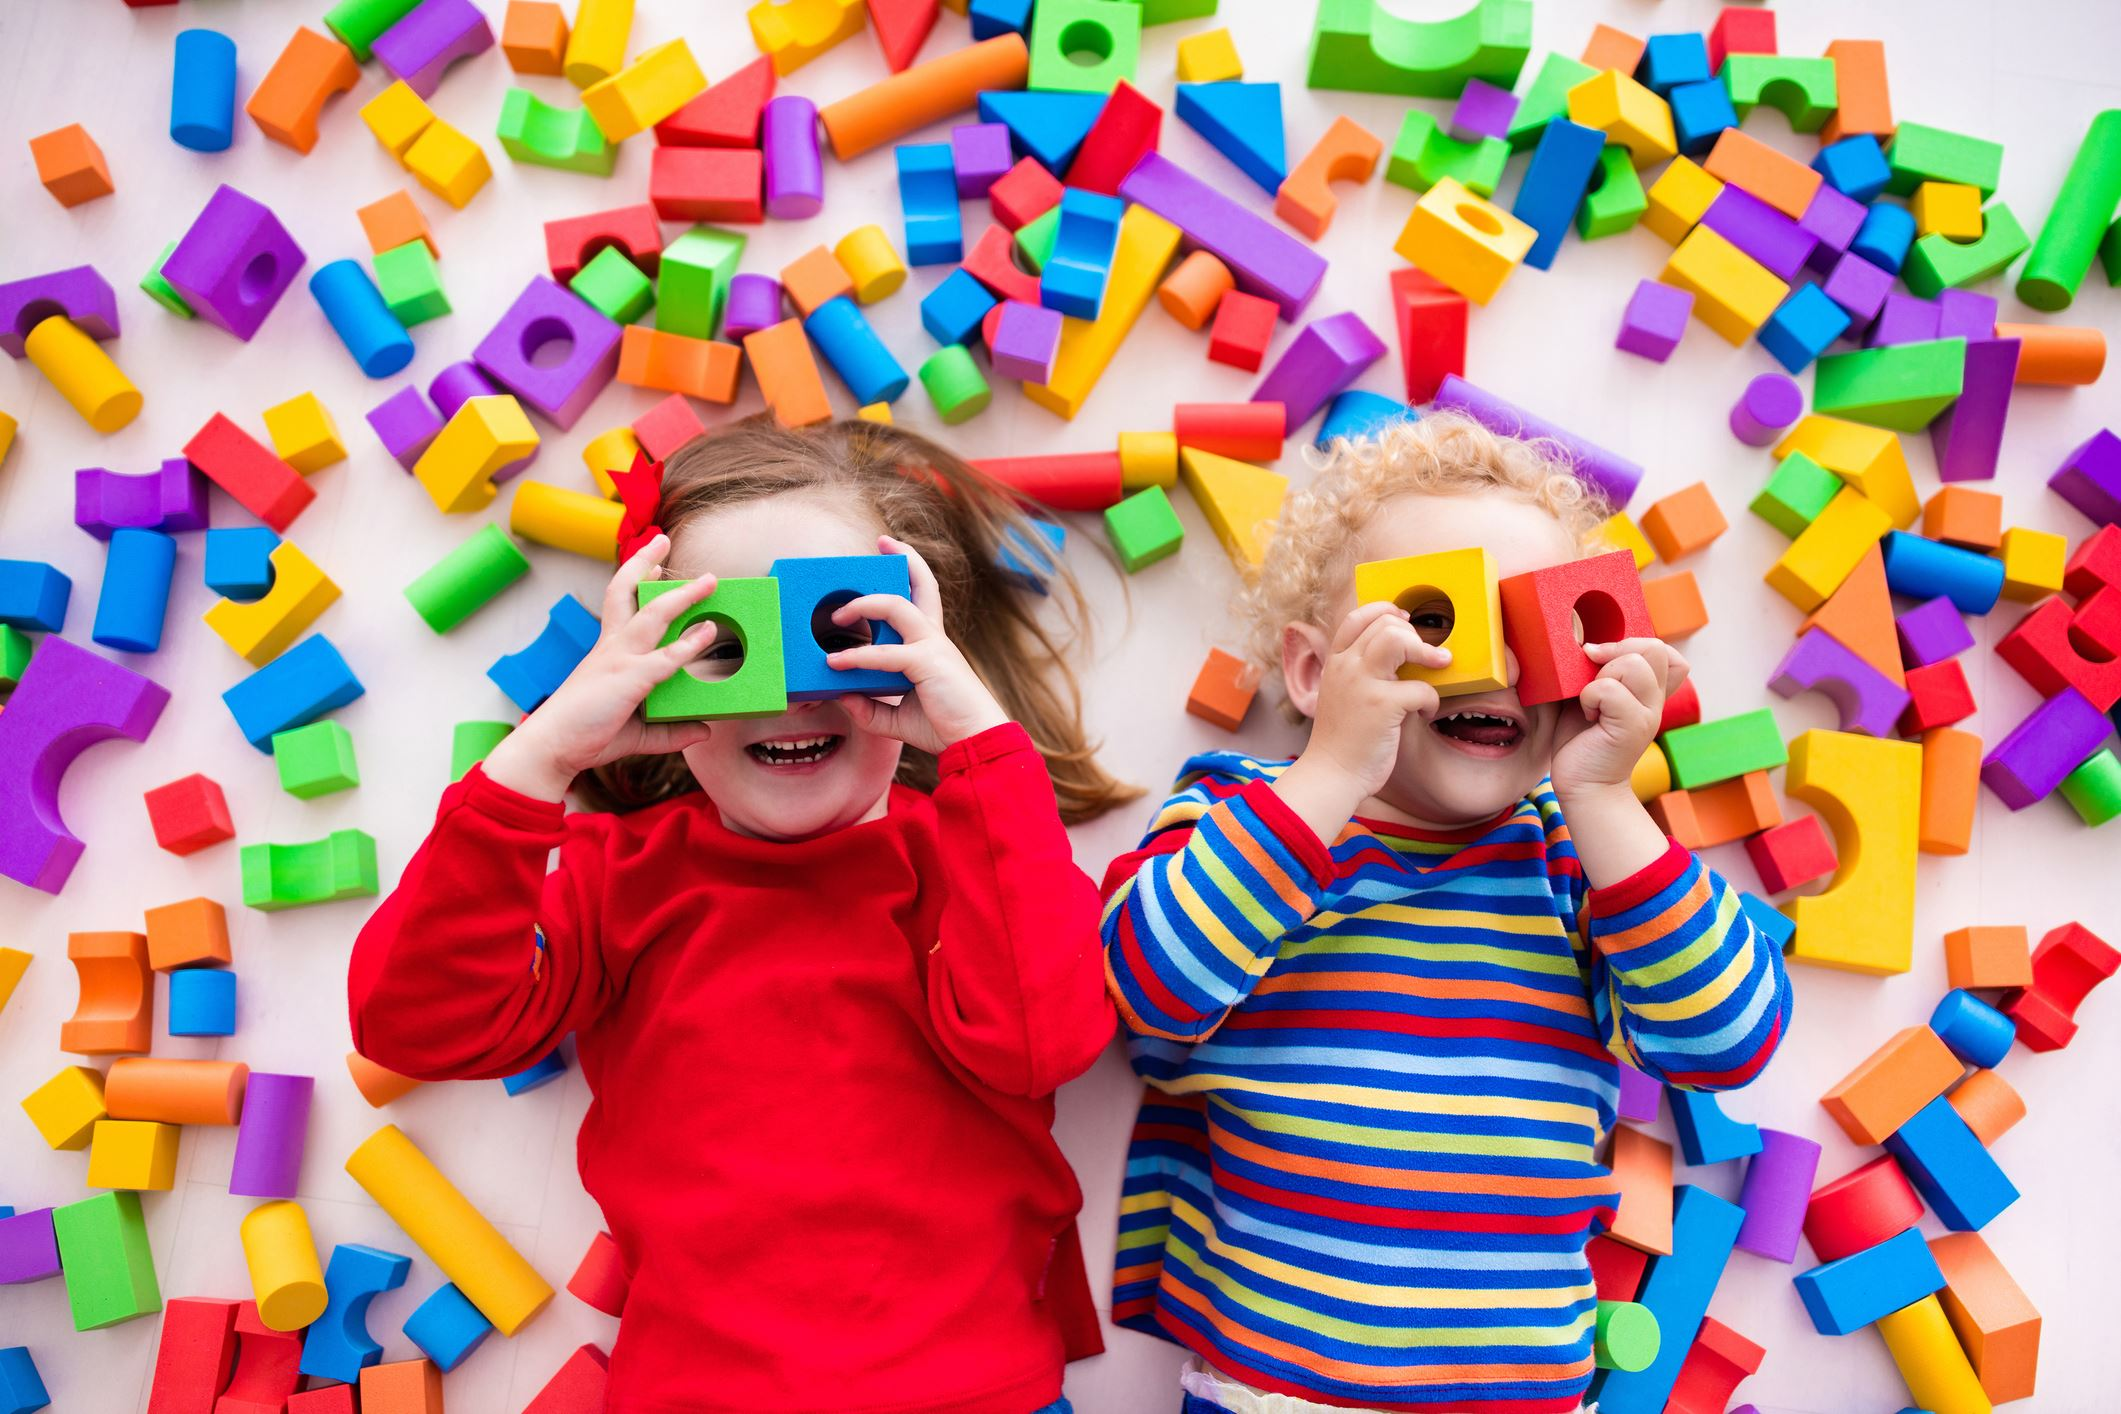 Two kids playing with colorful foam blocks